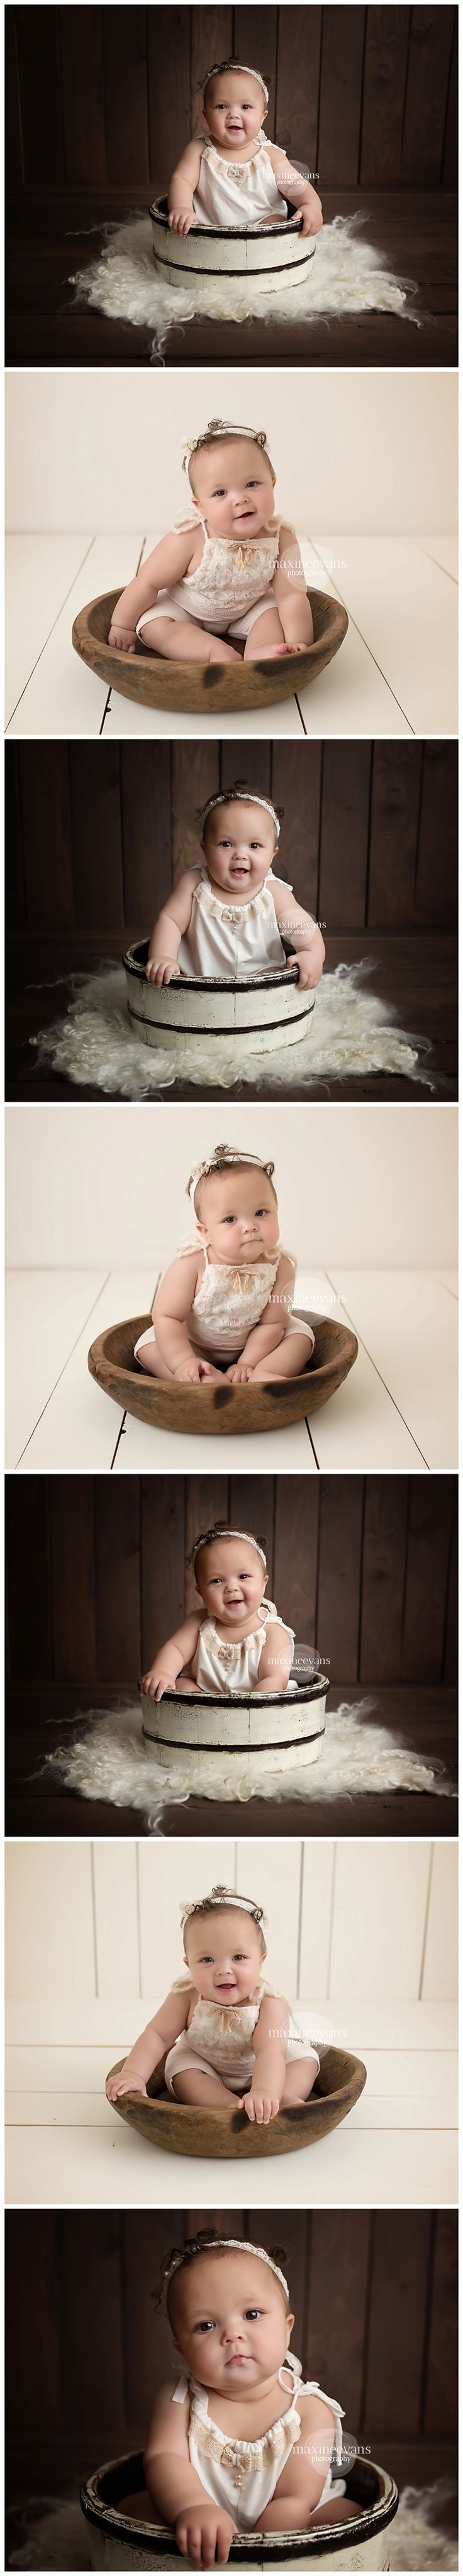 Sitter Session!  Los Angeles Baby Photographer  www.maxineevansphotography.com